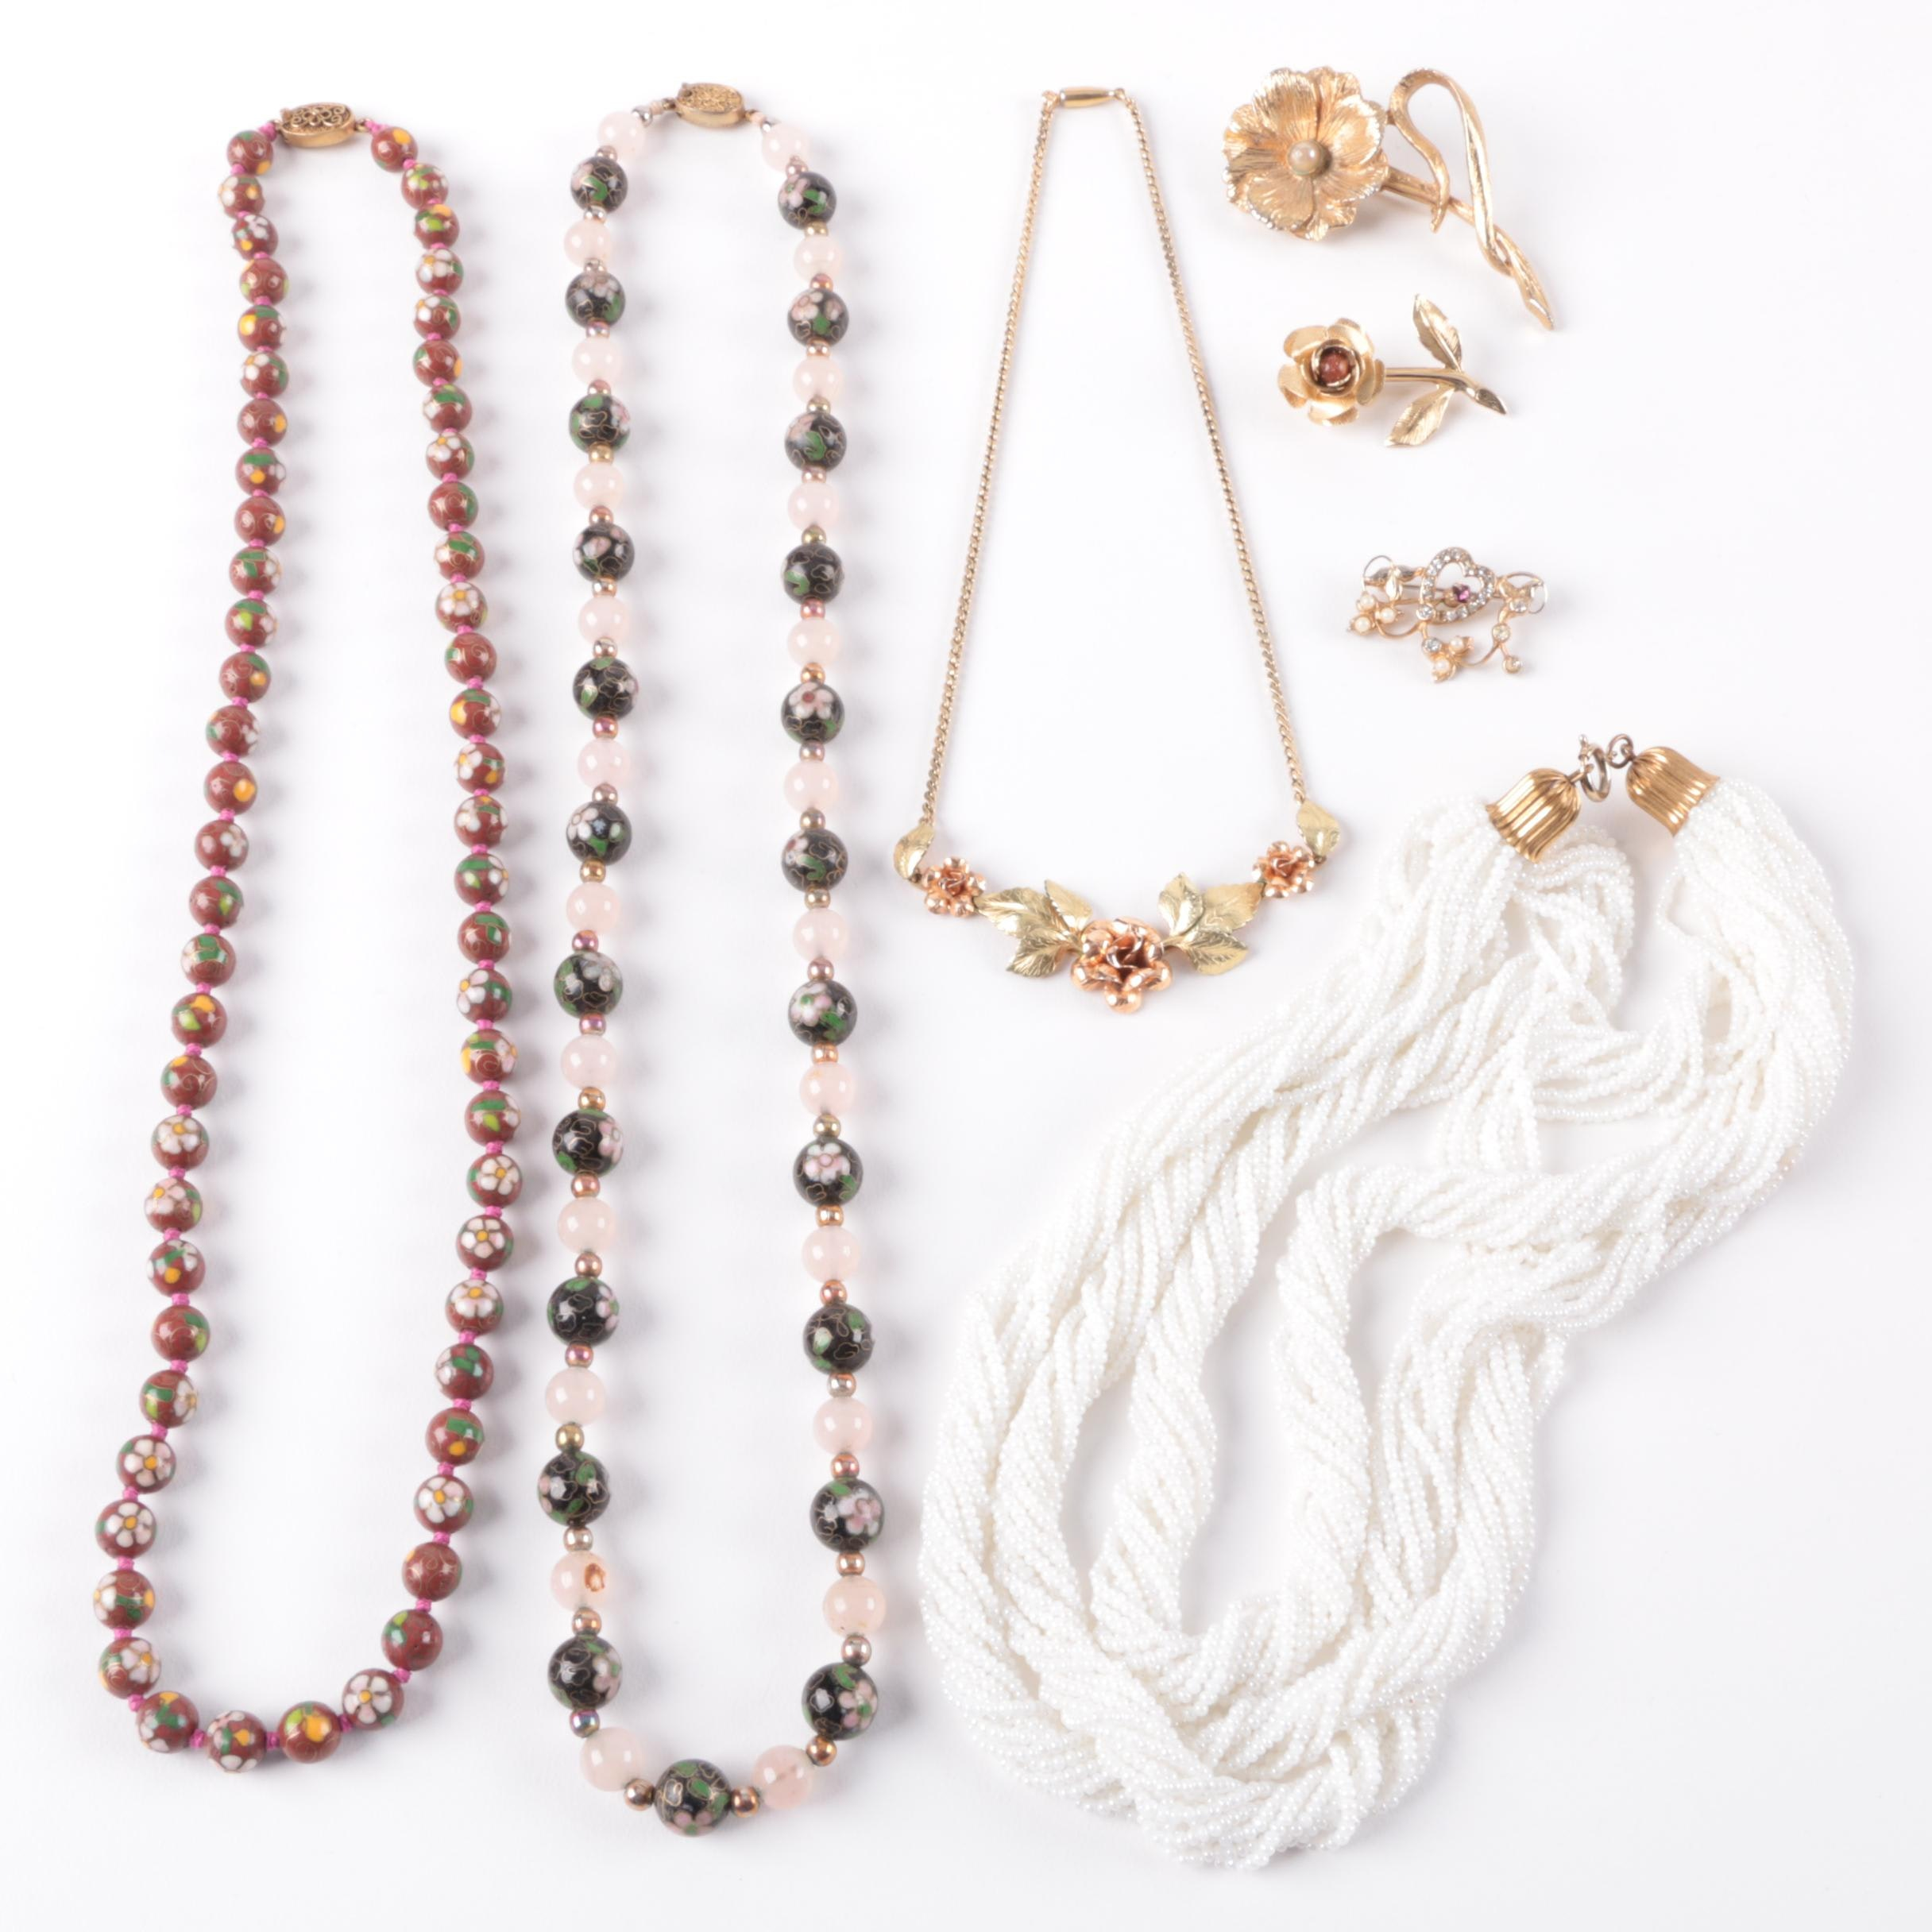 Assortment of Costume Necklaces and Brooches Featuring Krementz